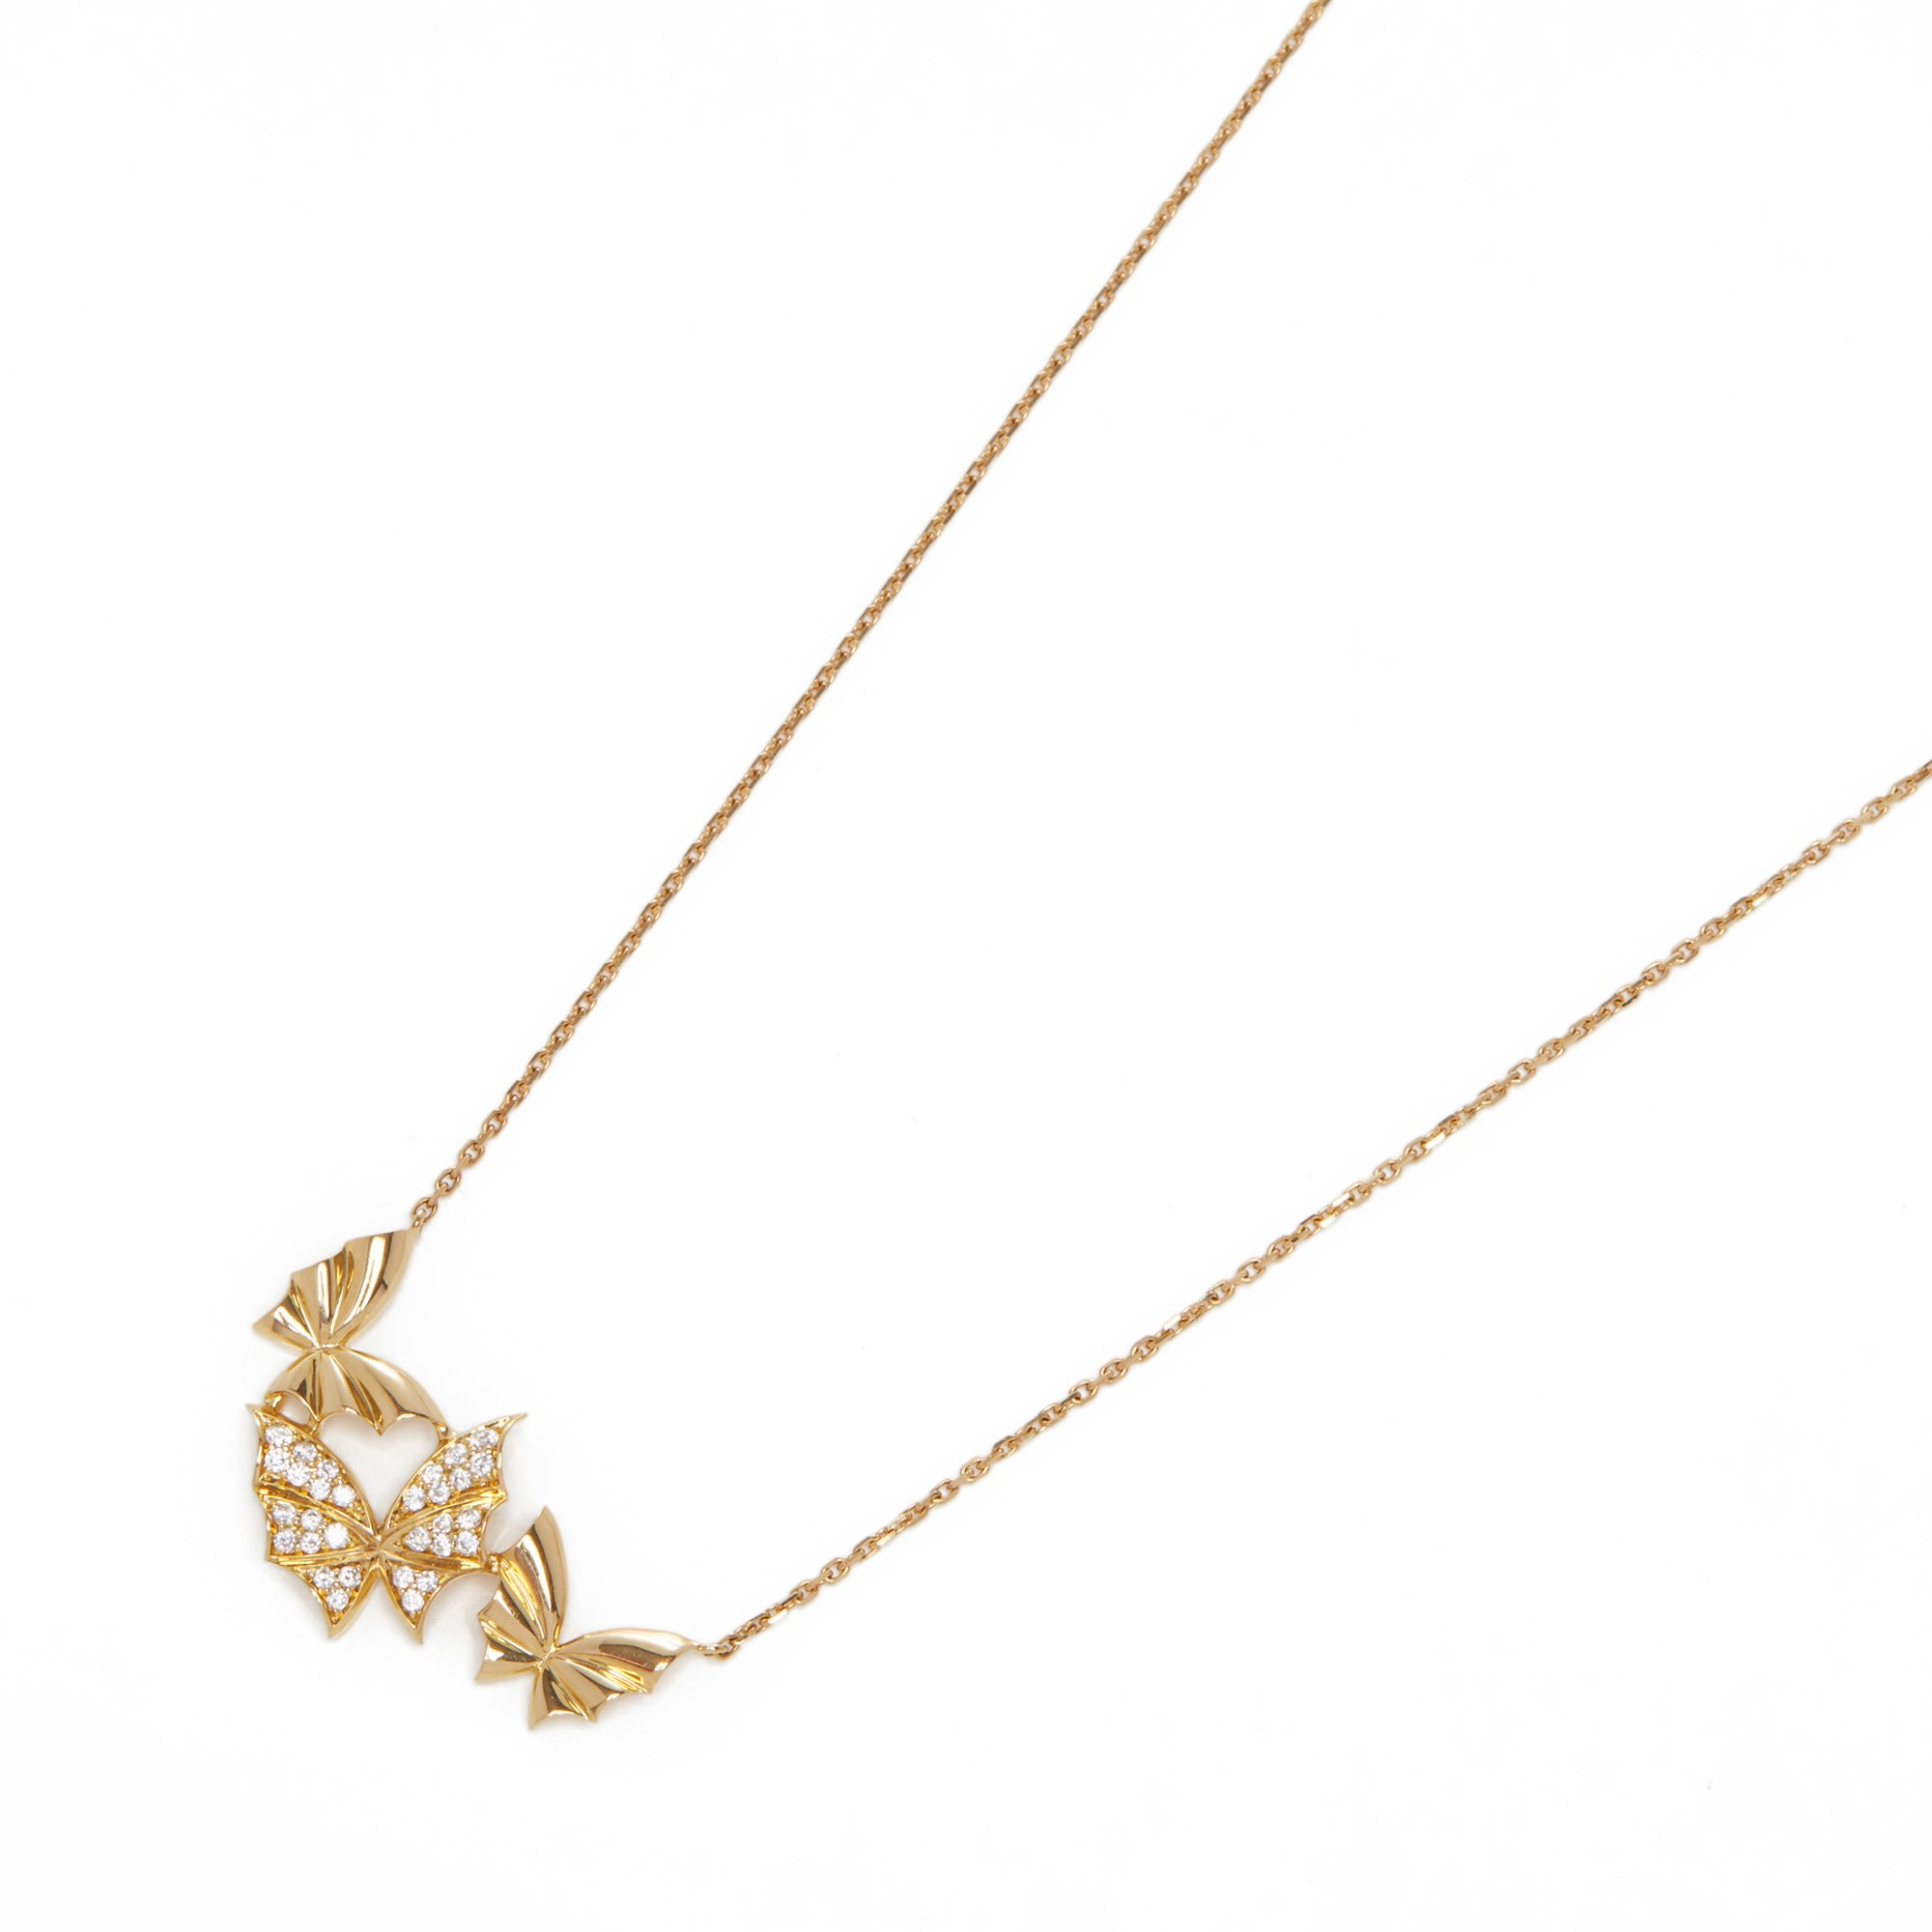 Stephen Webster Fly by night 18ct Yellow Gold Diamond Necklace